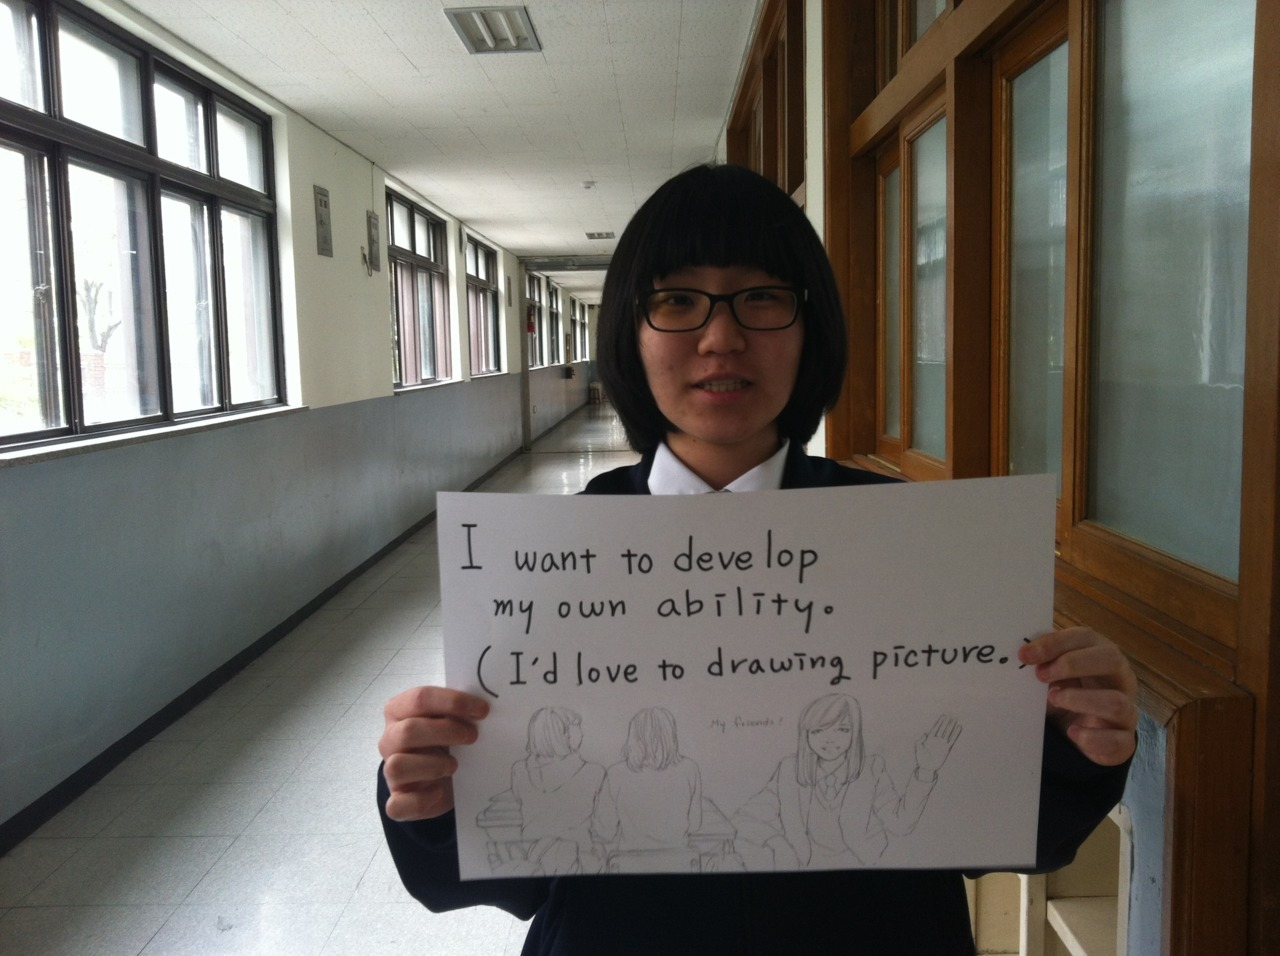 I want to develop my own ability.  (I'd love to drawing picture.) My friends!